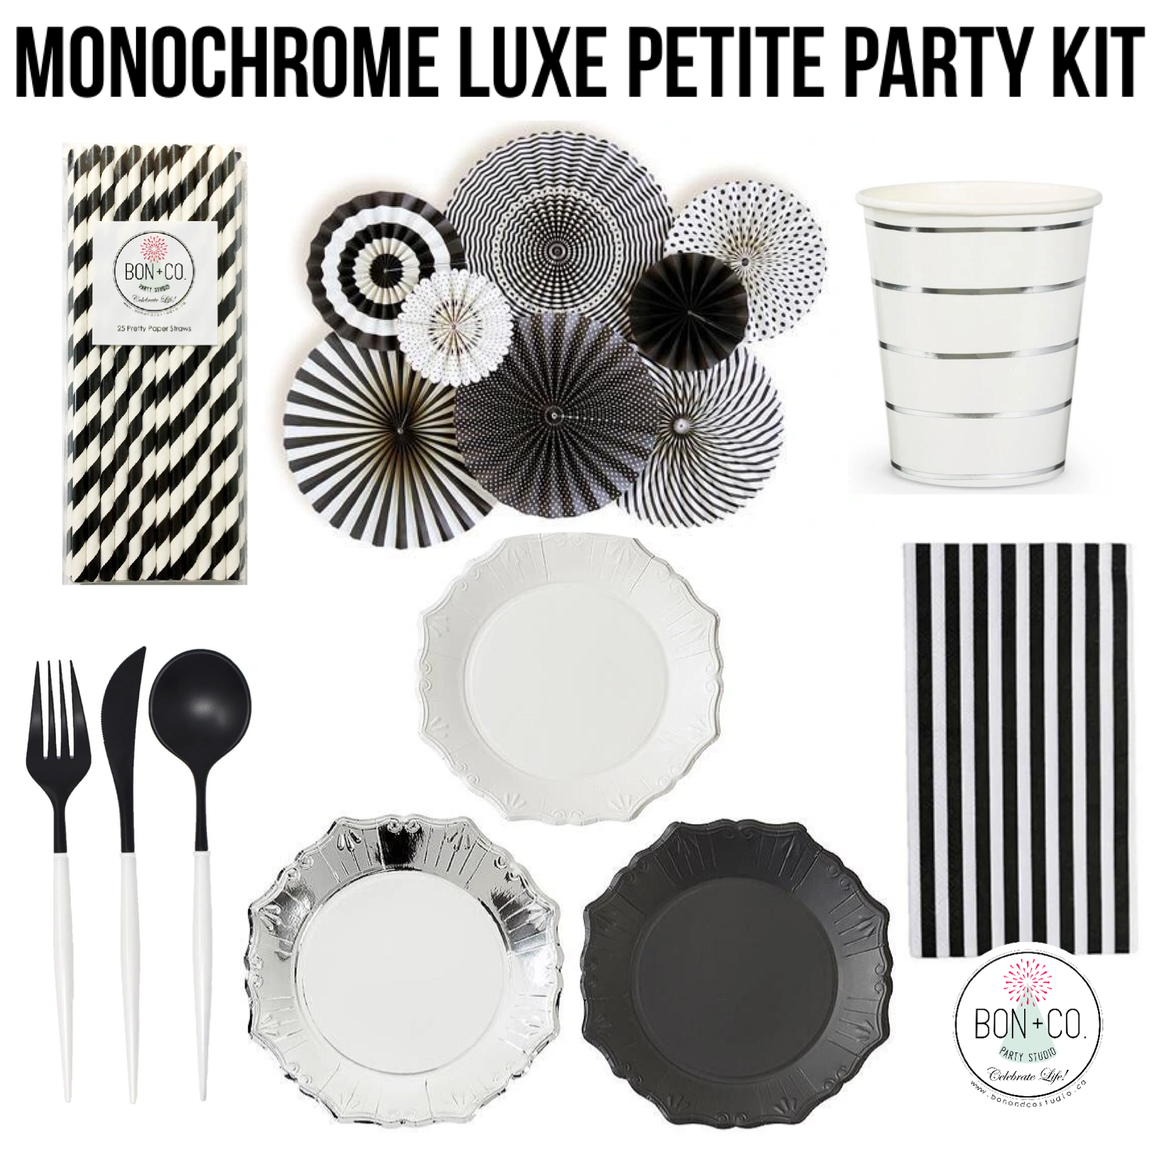 PETITE PARTY KIT LUXE - MONOCHROME